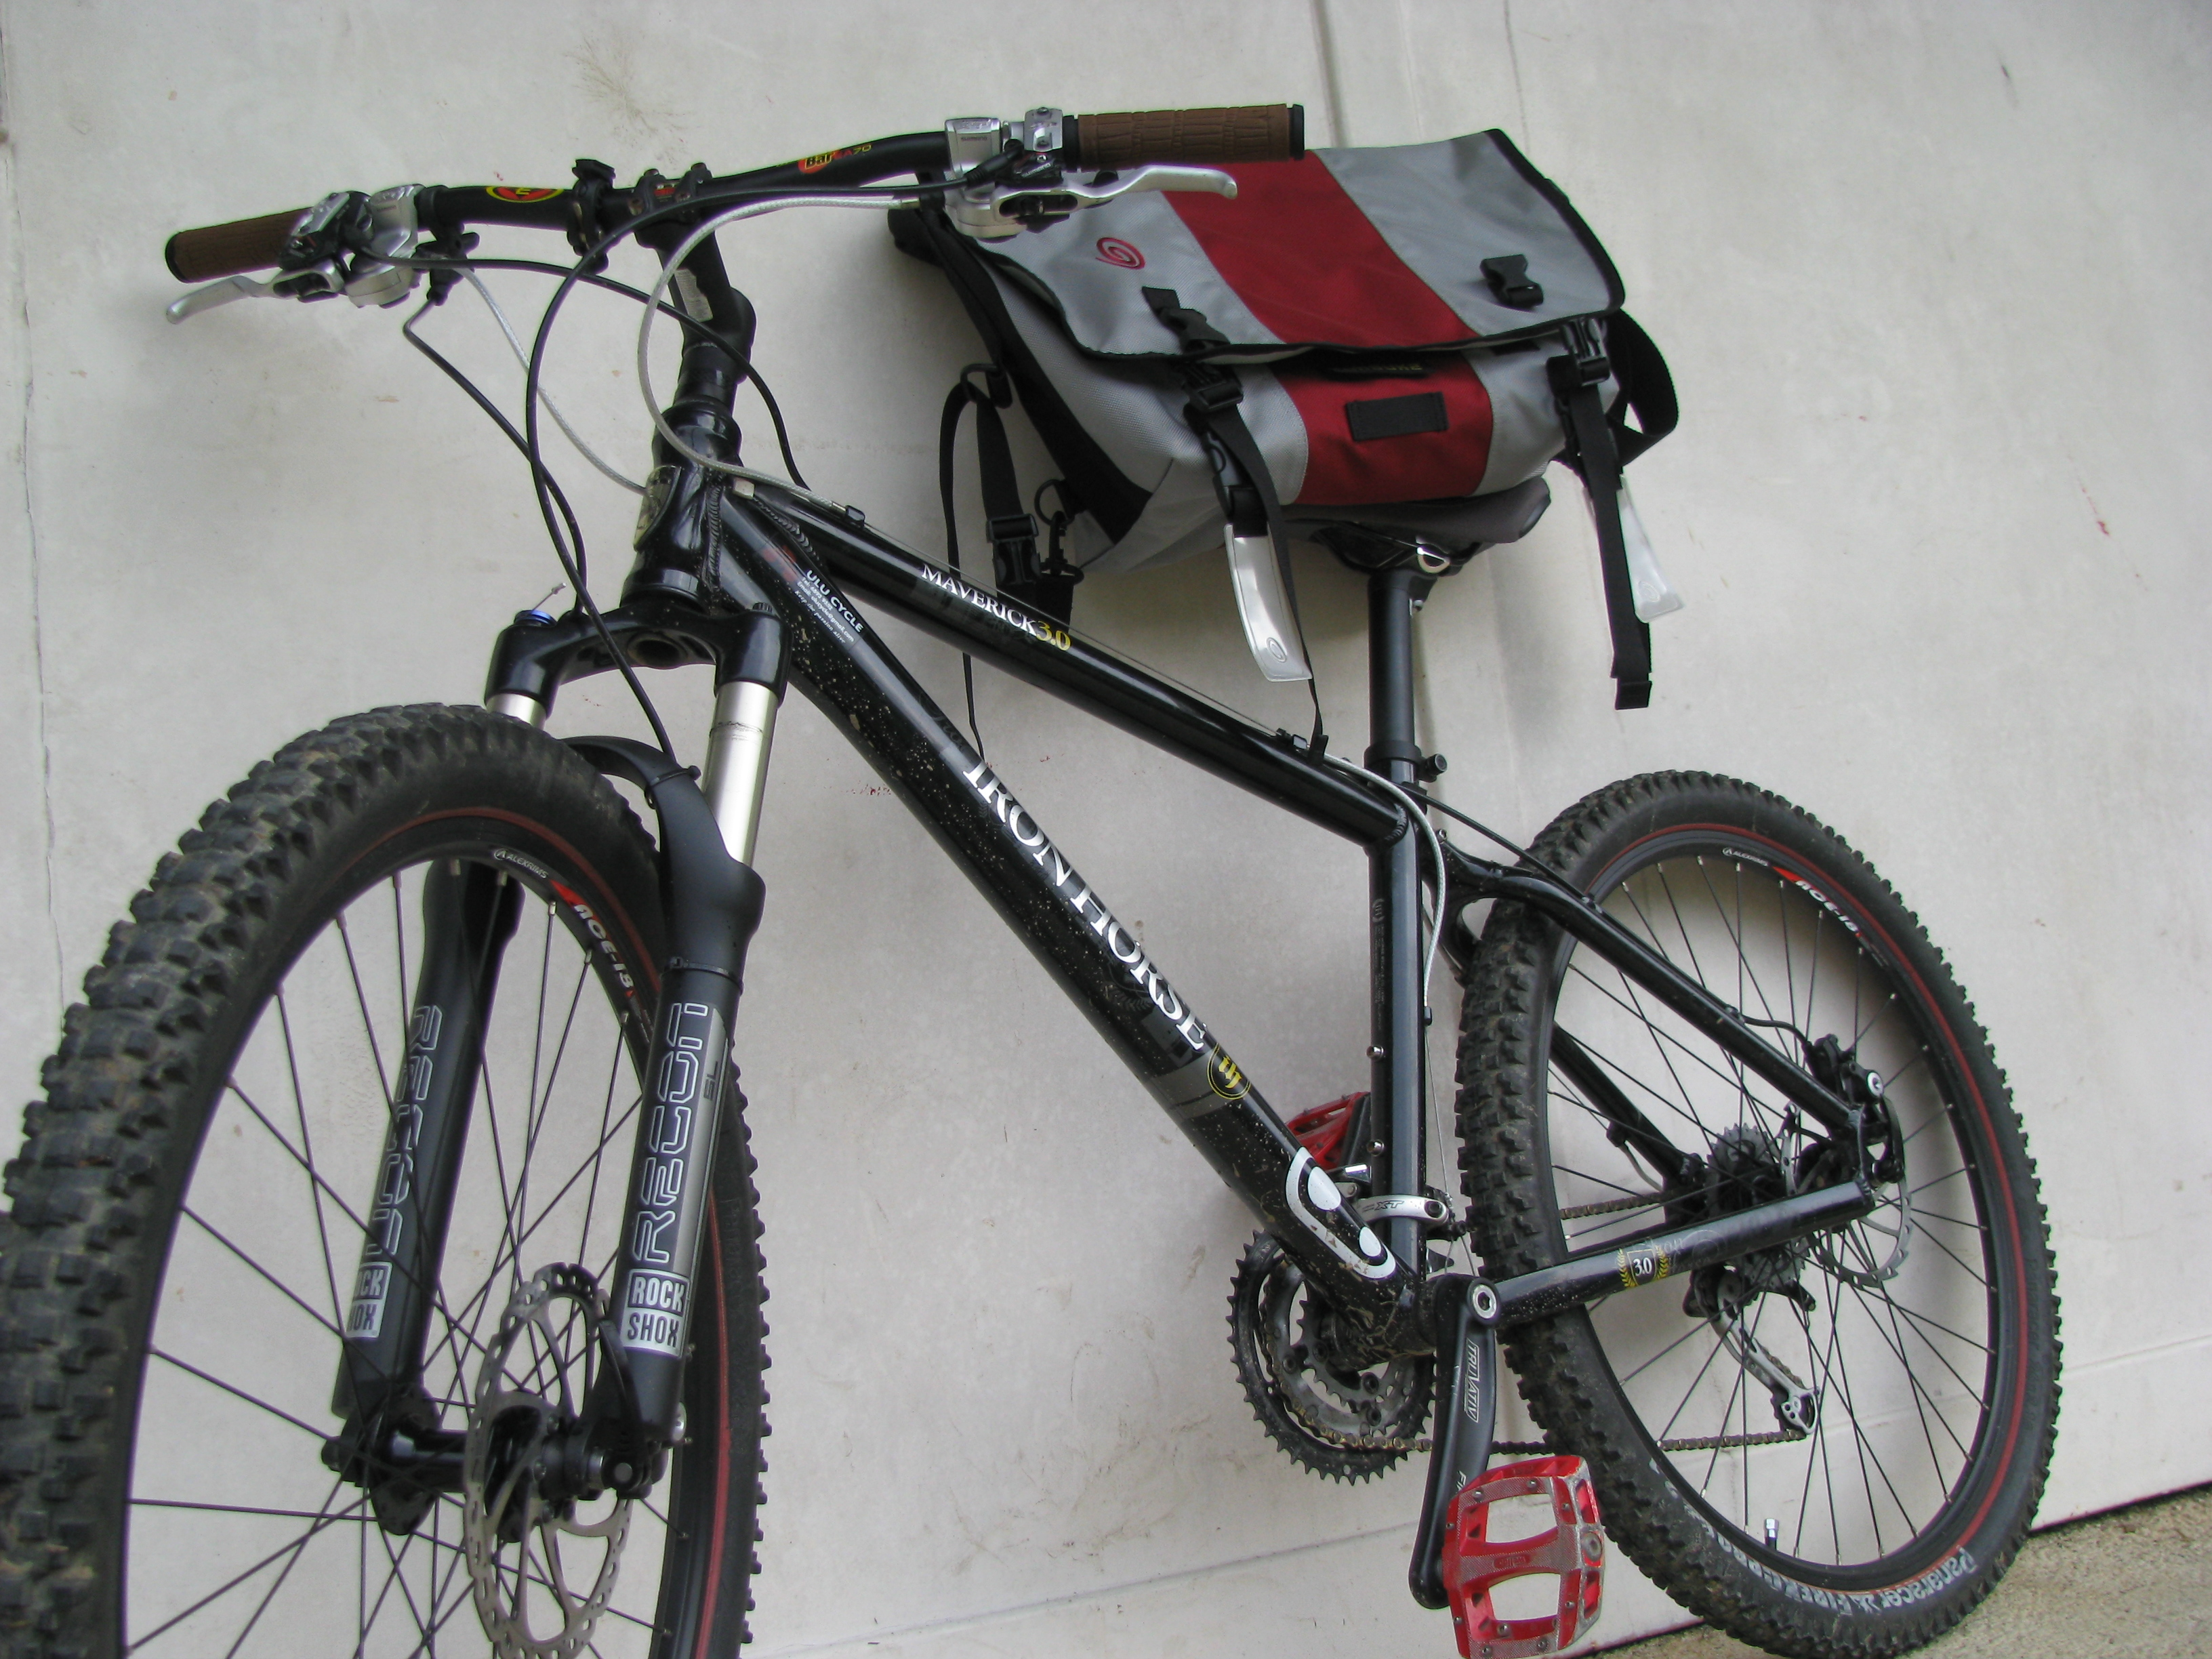 File:Iron Horse Maverick 3.0 and Timbuk2 messenger bag.jpg ...